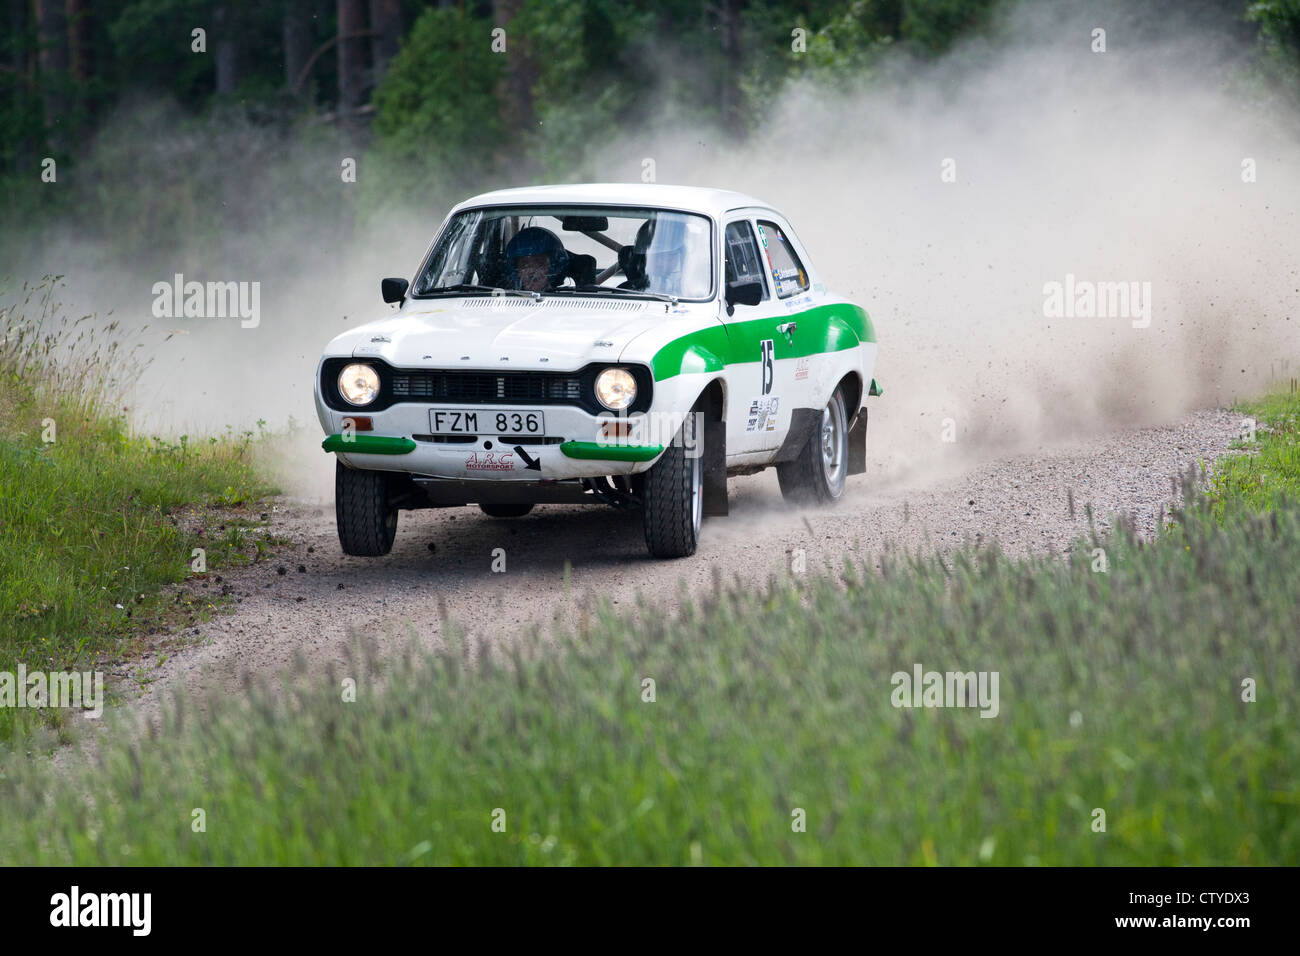 Old rally car on gravel road Stock Photo: 49776107 - Alamy